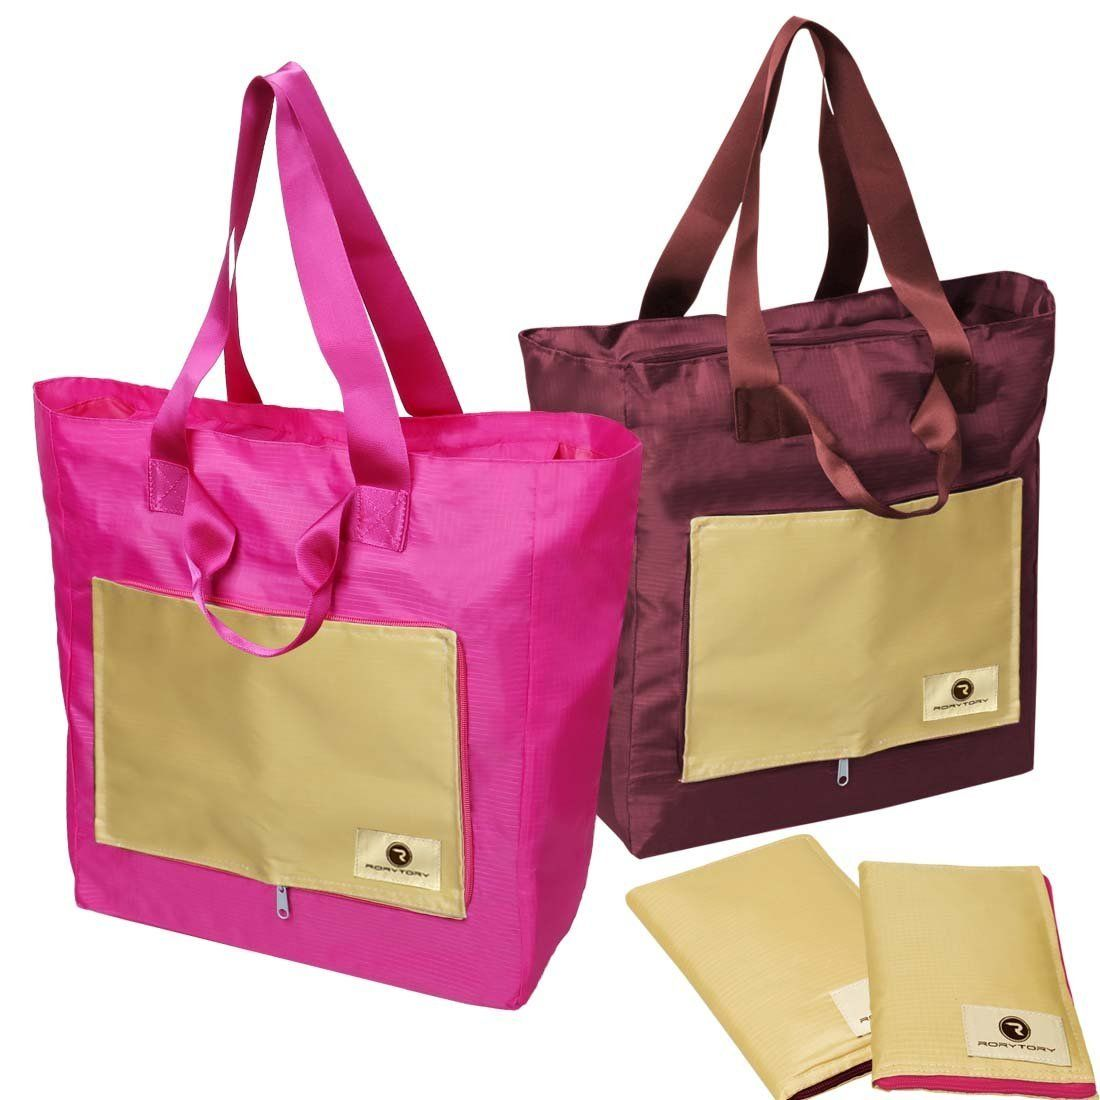 rorytory 2 pack pink u0026 maroon foldable compact nylon shopping travel tote bags large waterproof - Travel Tote Bags